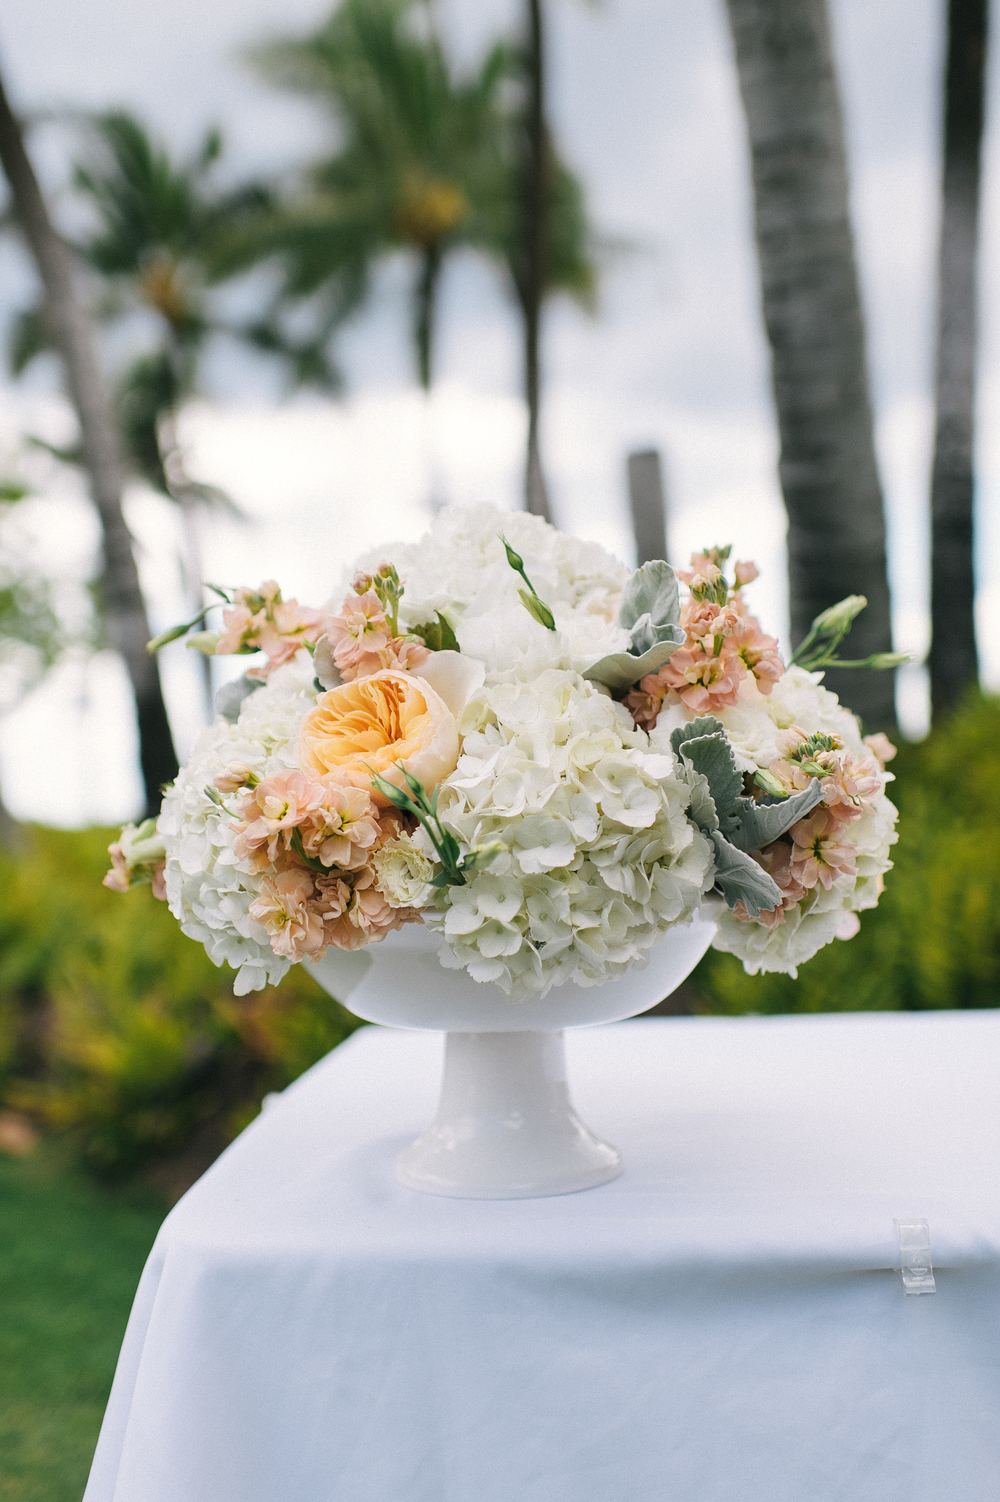 Michelle Garibay Events | Modern Vintage Hawaii Wedding | Oahu Destination Wedding | Peach and Gray Wedding